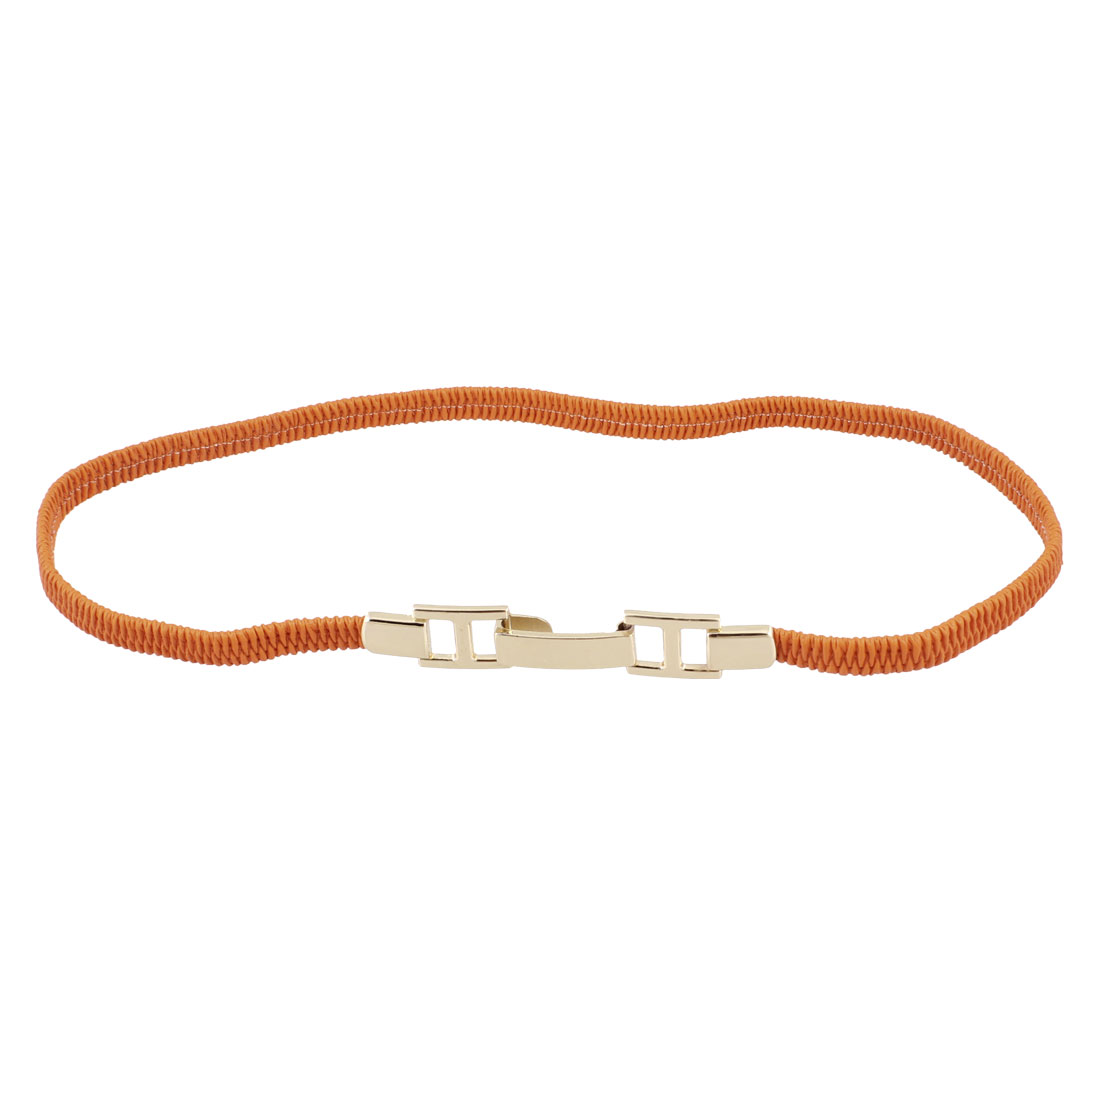 "Ladies Interlocking Buckle Stretchy Slim Waist Belt 0.4"" Width Orange"